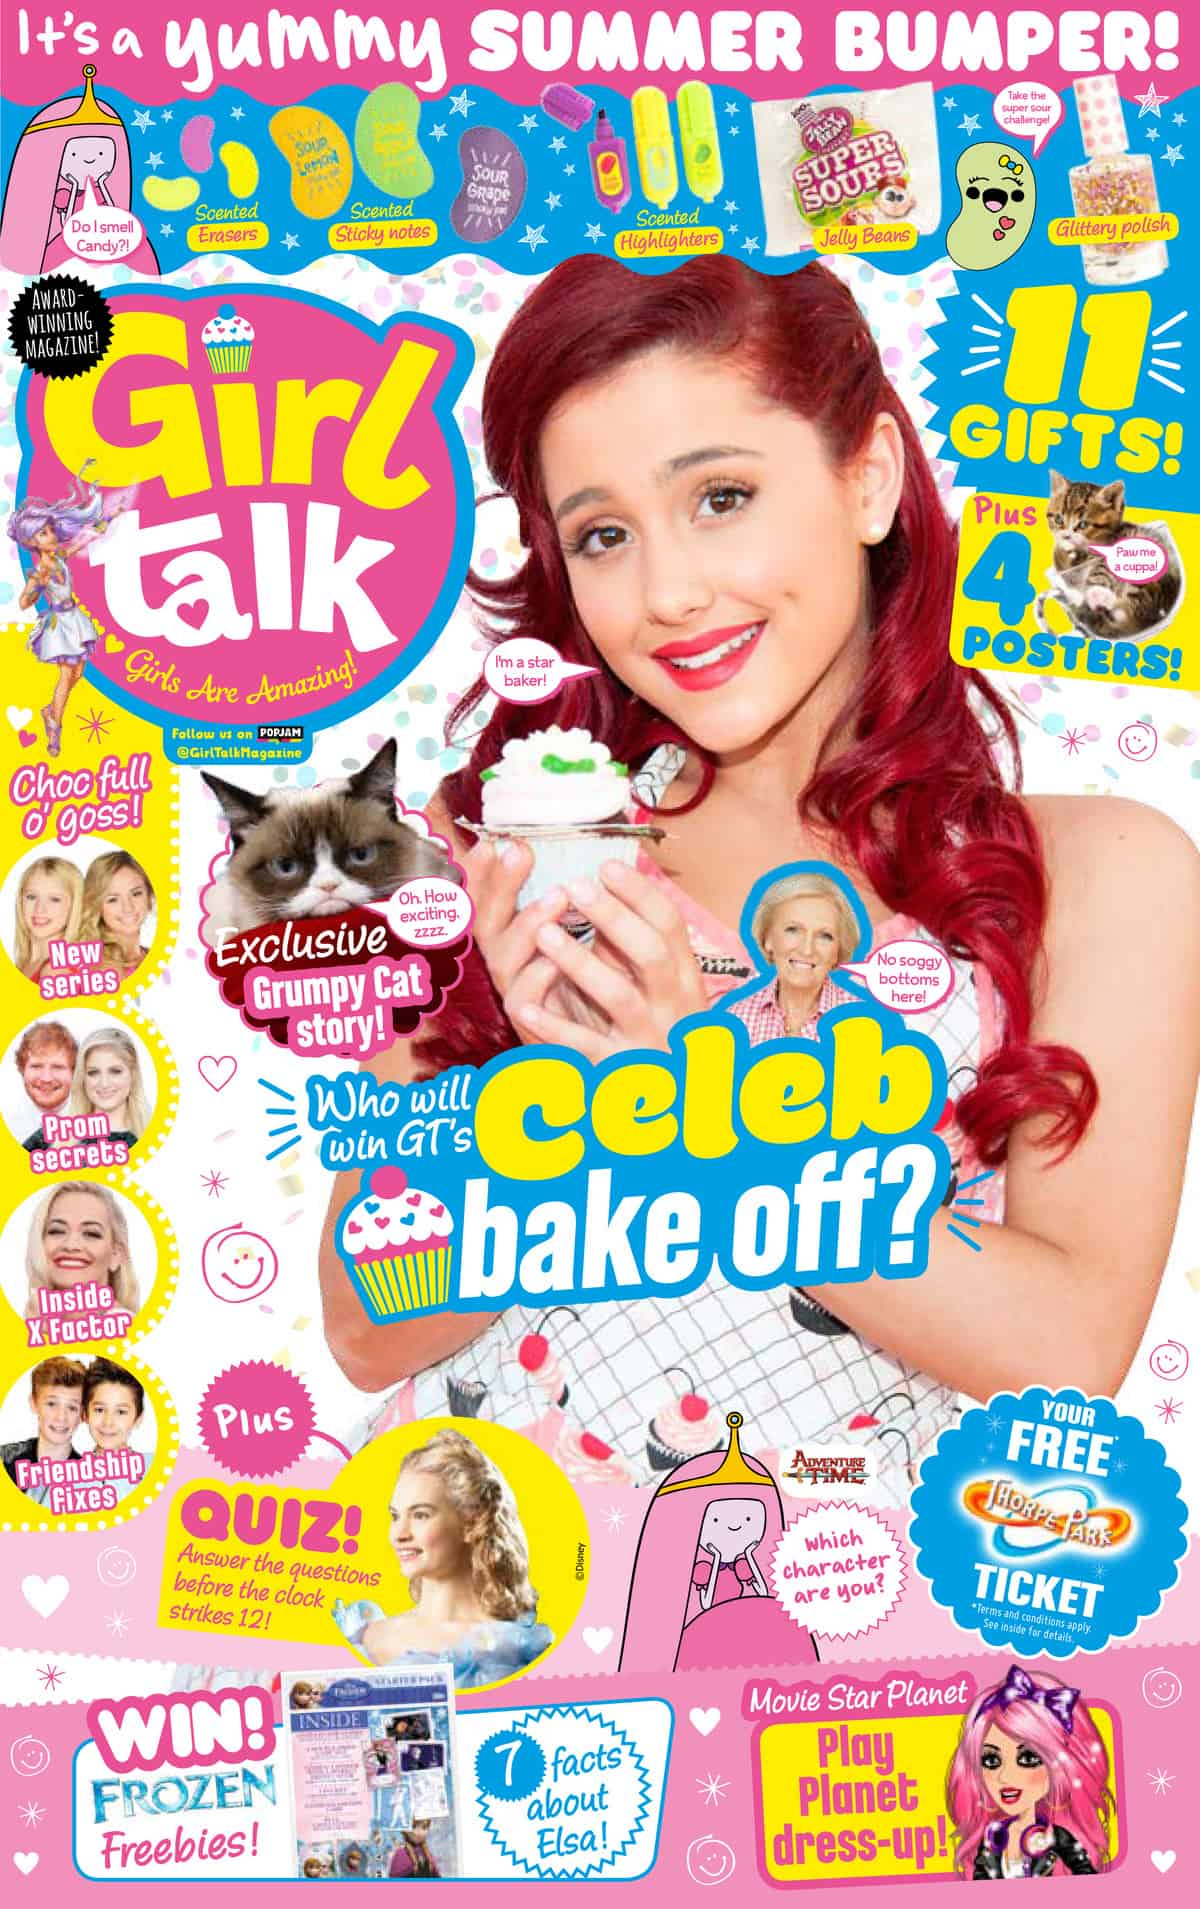 Check Out The Latest Issue Of Girl Talk Magazine Fun